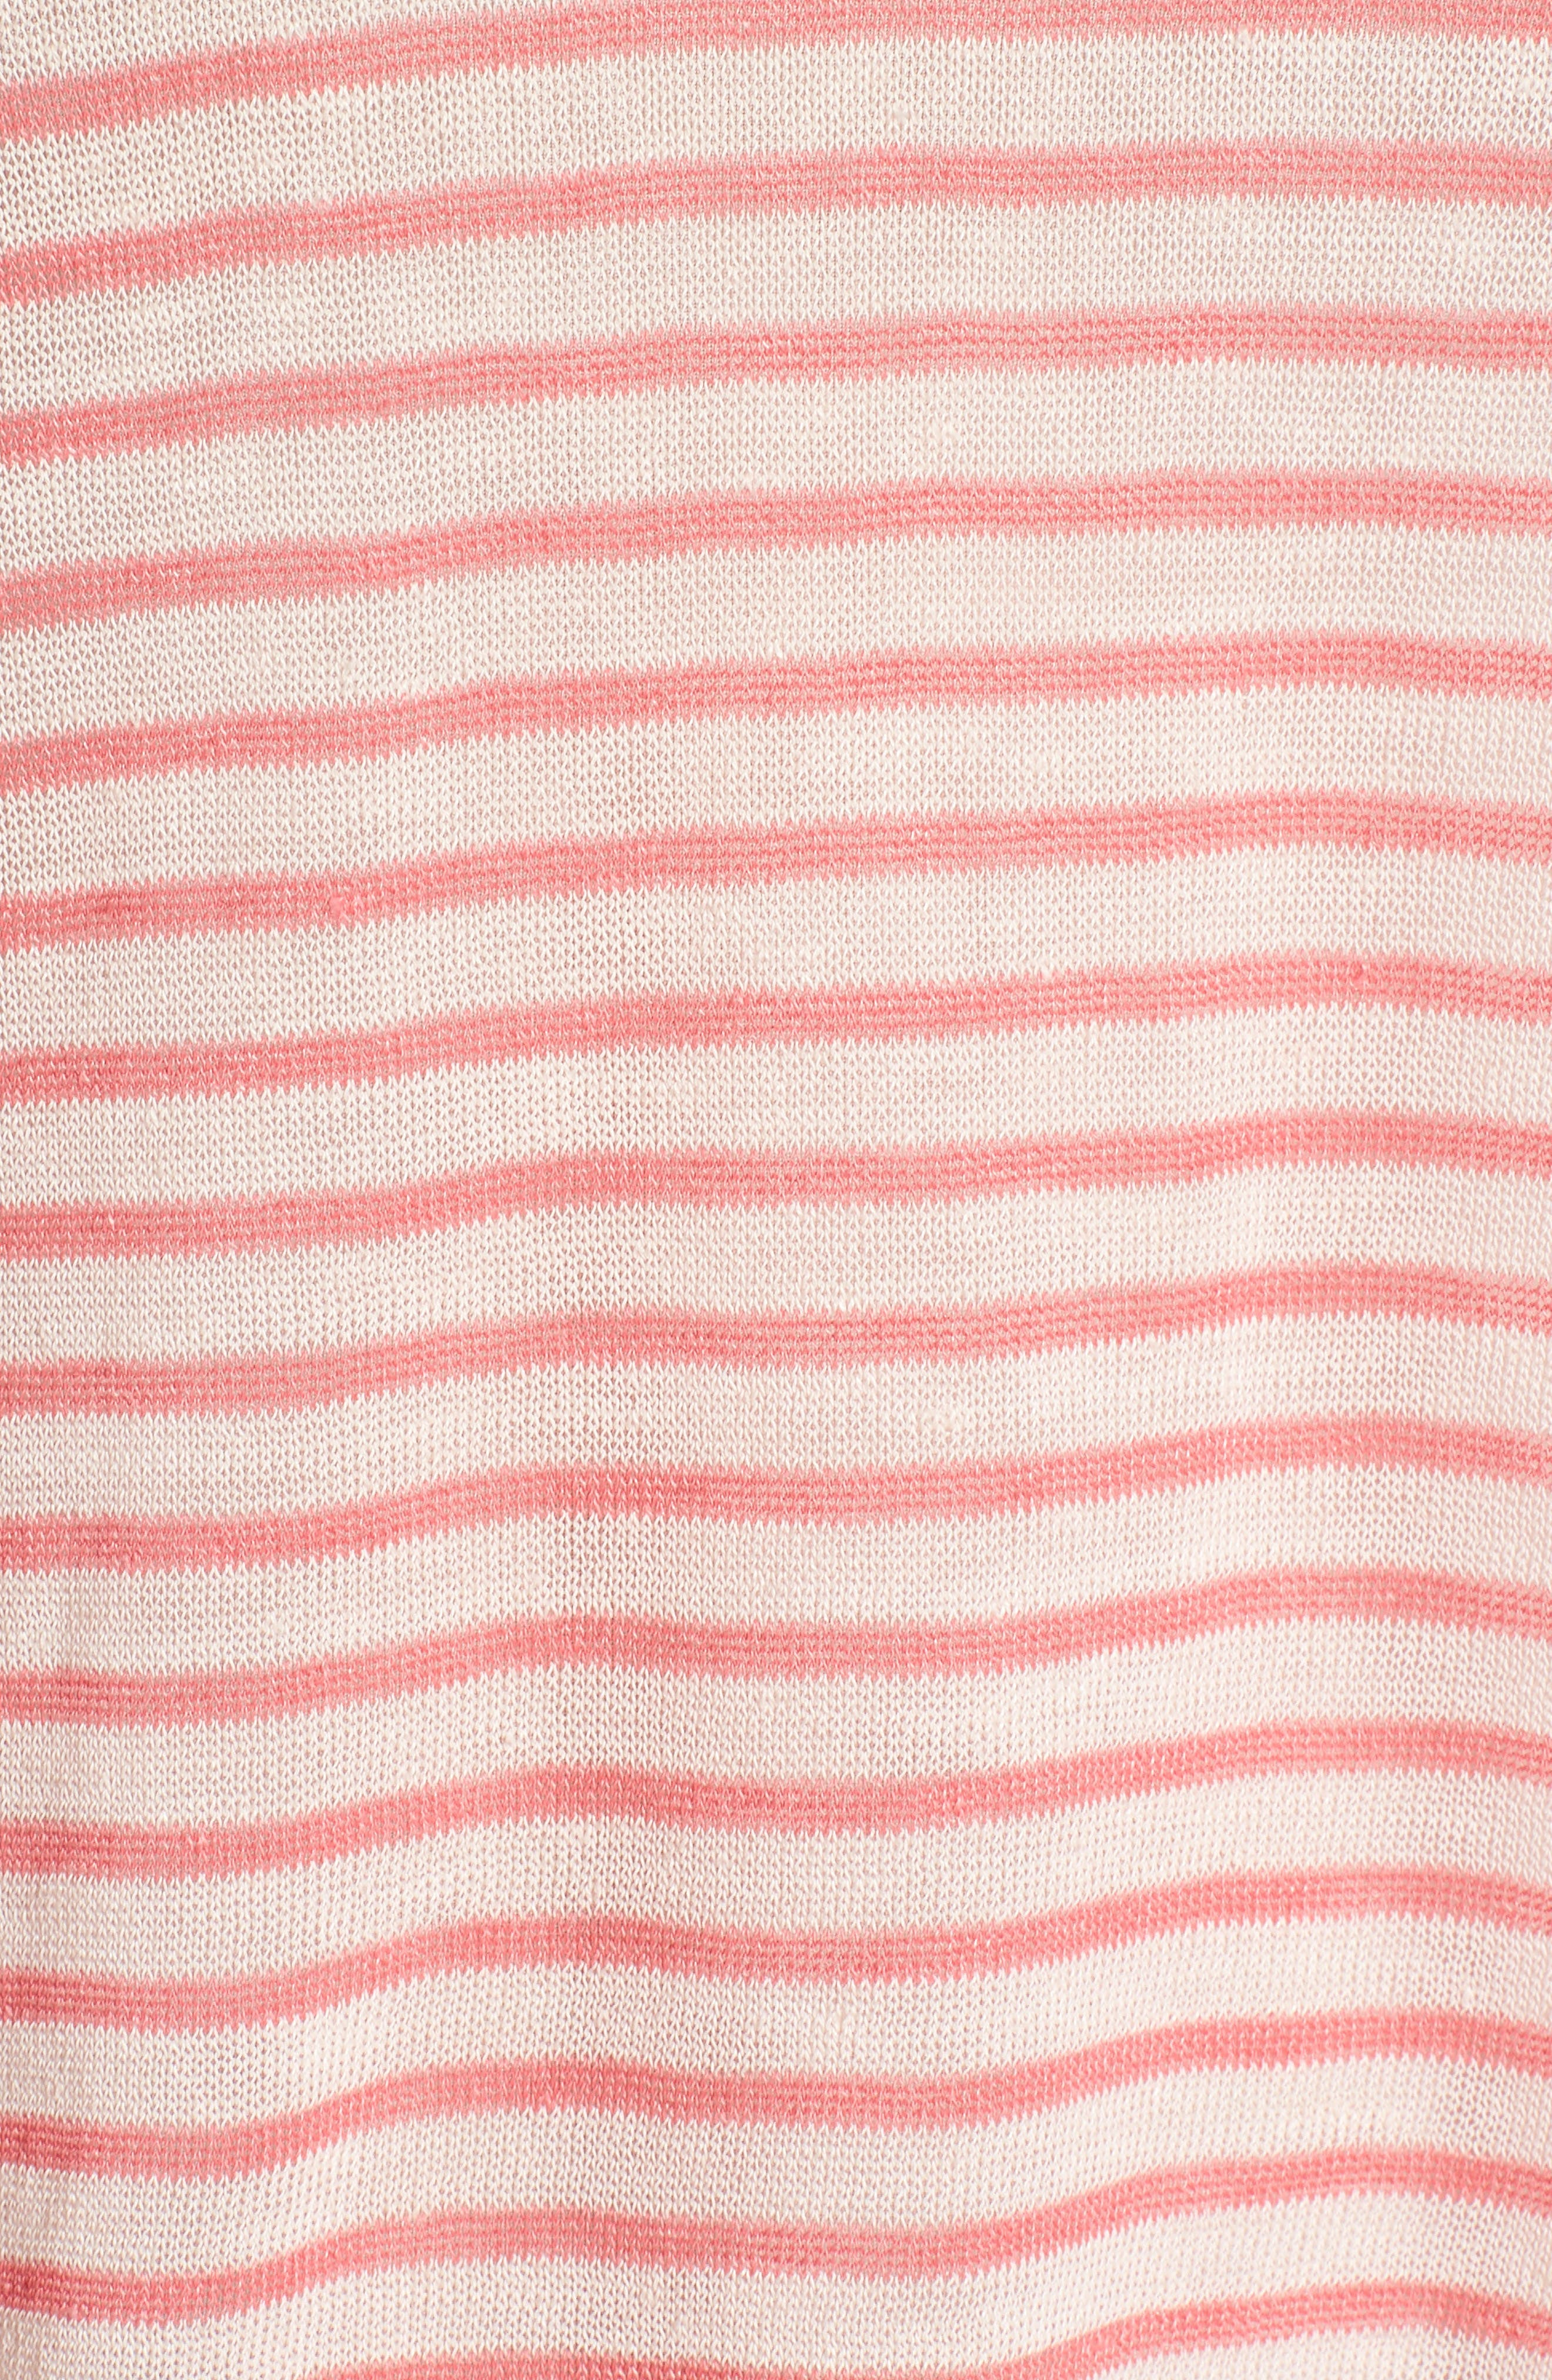 Stripe Linen Blend Sweater,                             Alternate thumbnail 6, color,                             Pink Peony- Coral Rose Stripe